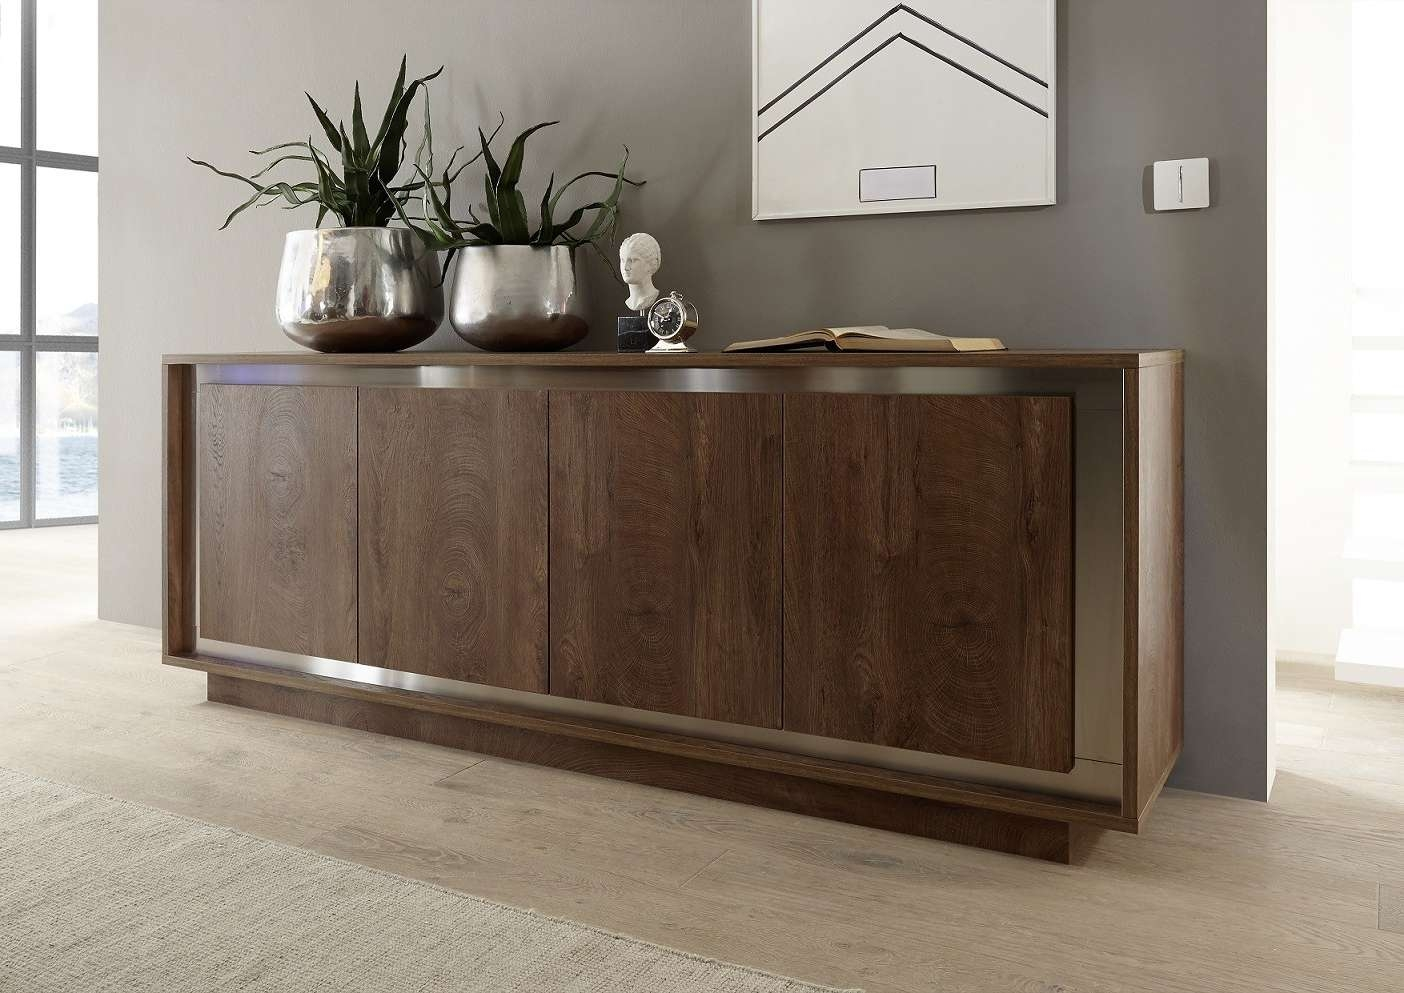 Modern Sideboards Uk – Sena Home Furniture For Modern Contemporary Sideboards (View 2 of 20)